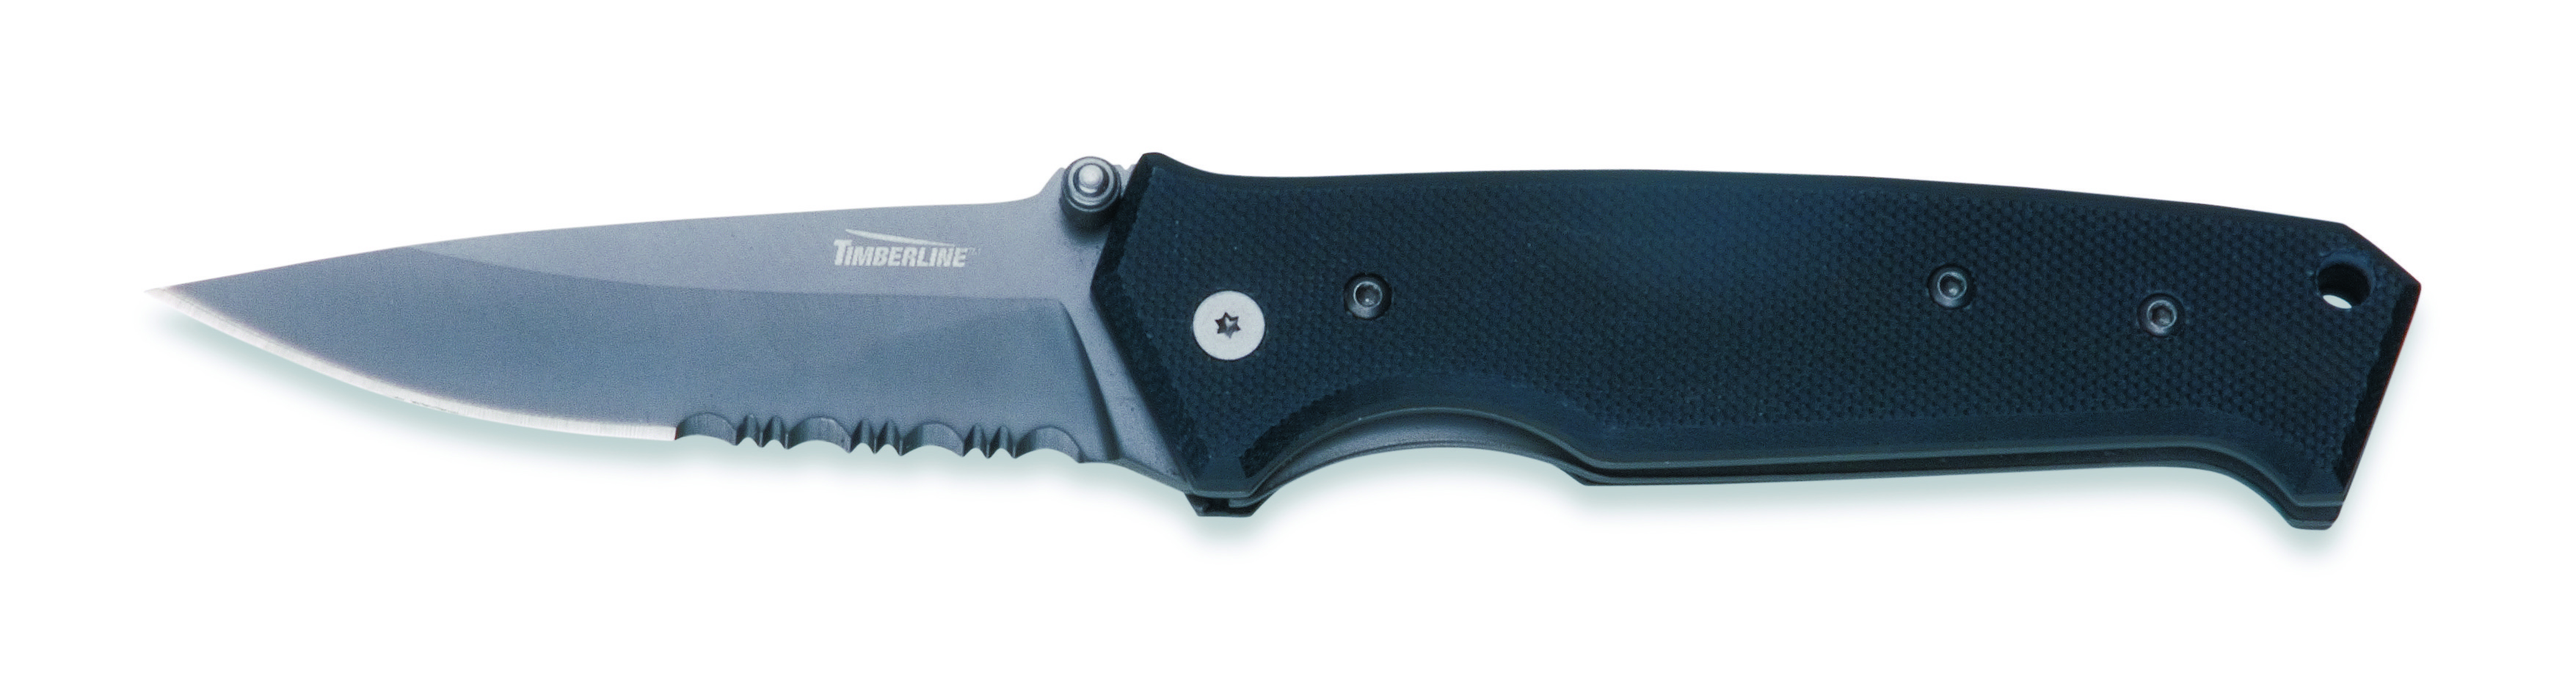 1231 - GATCO TIMBERLINE VALLOTTON SIGNATURE KNIFE, LARGE COMBO EDGE